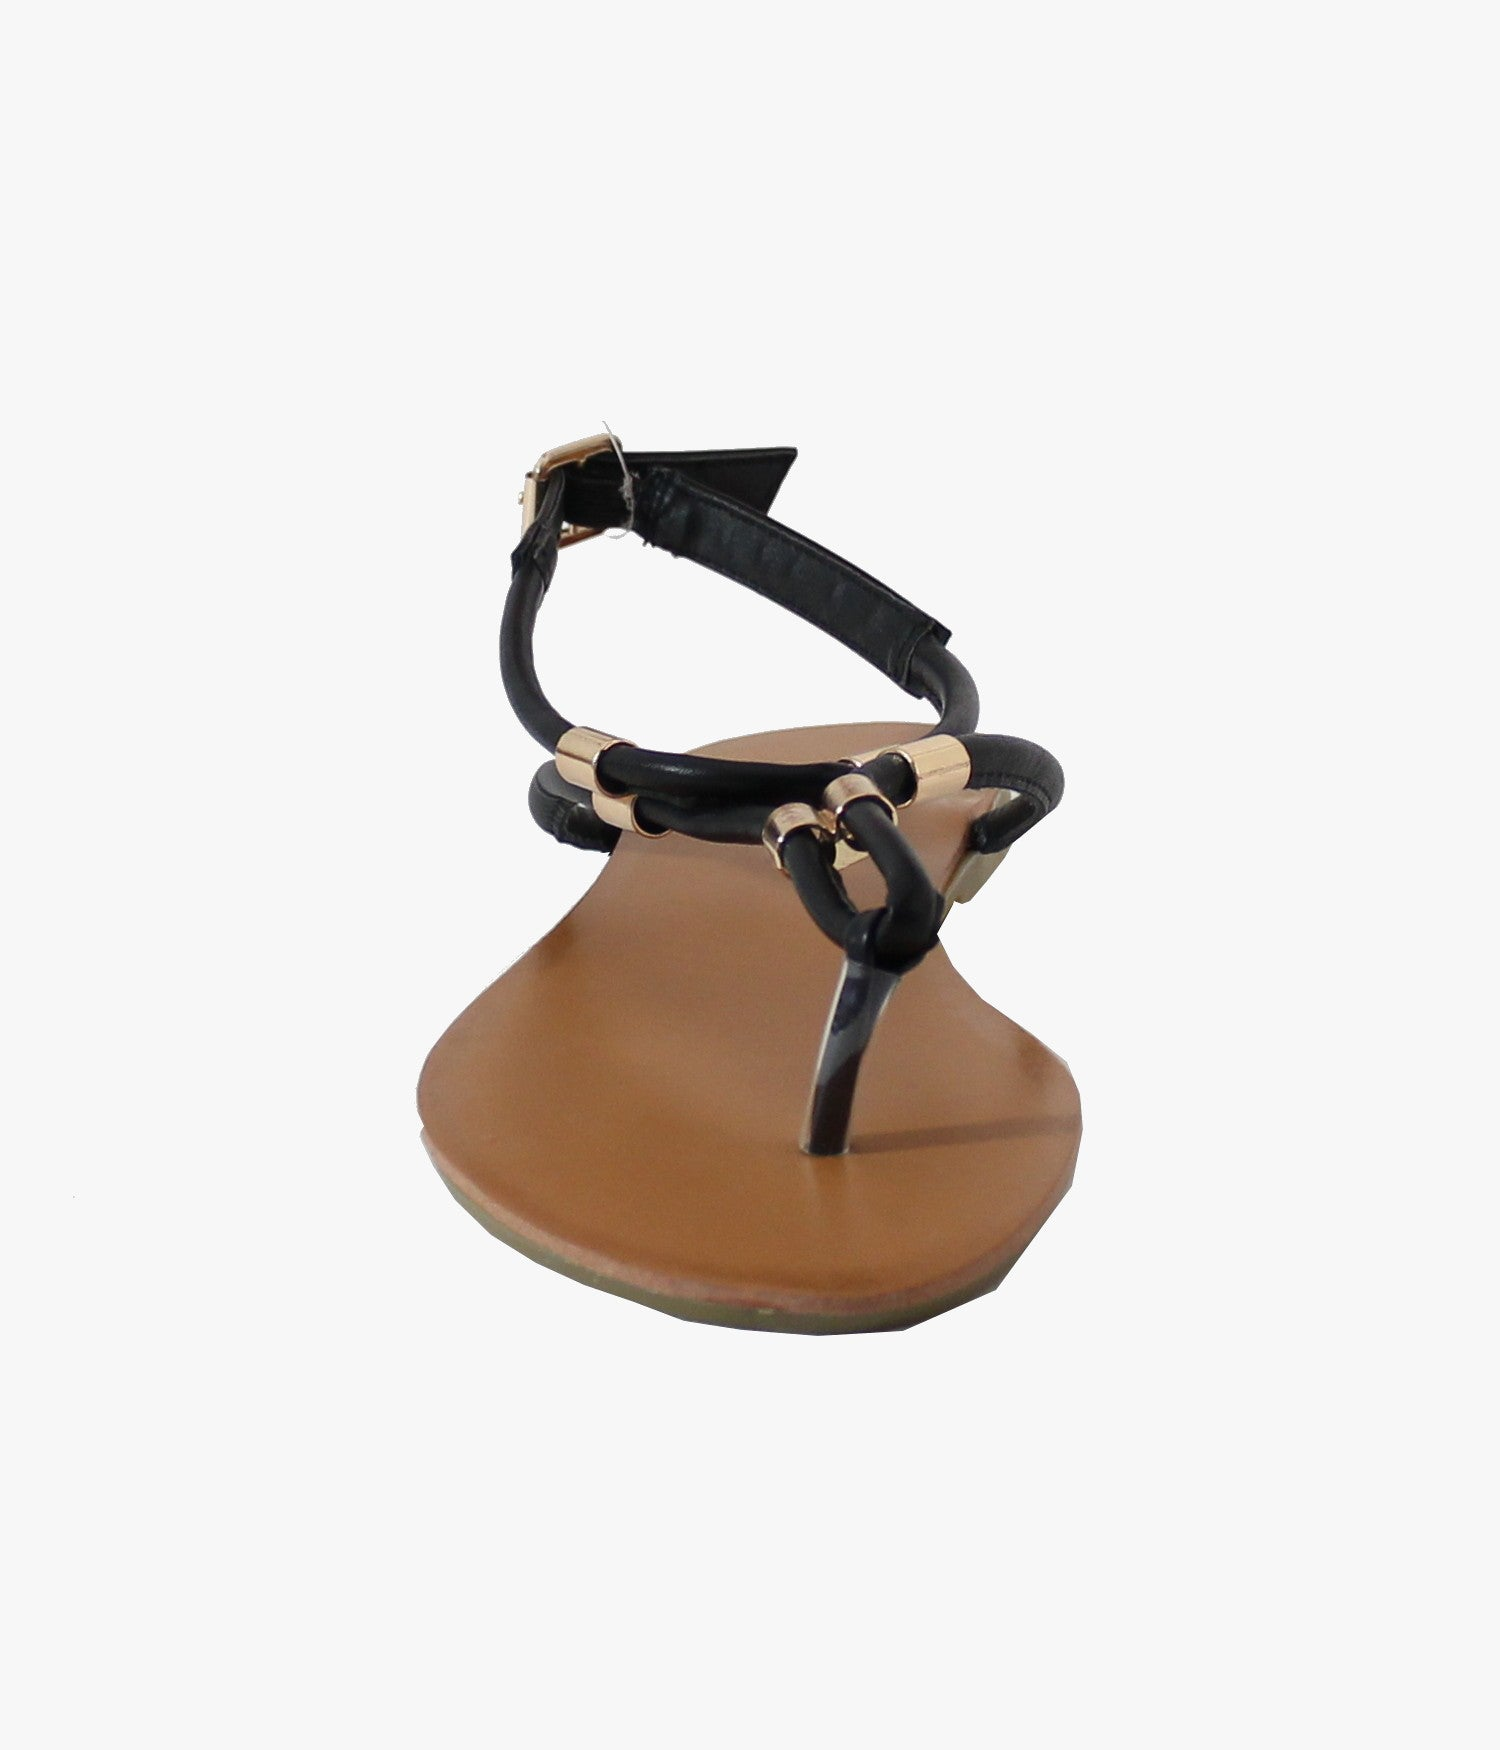 Sandale Plate Style Cuir - Femme